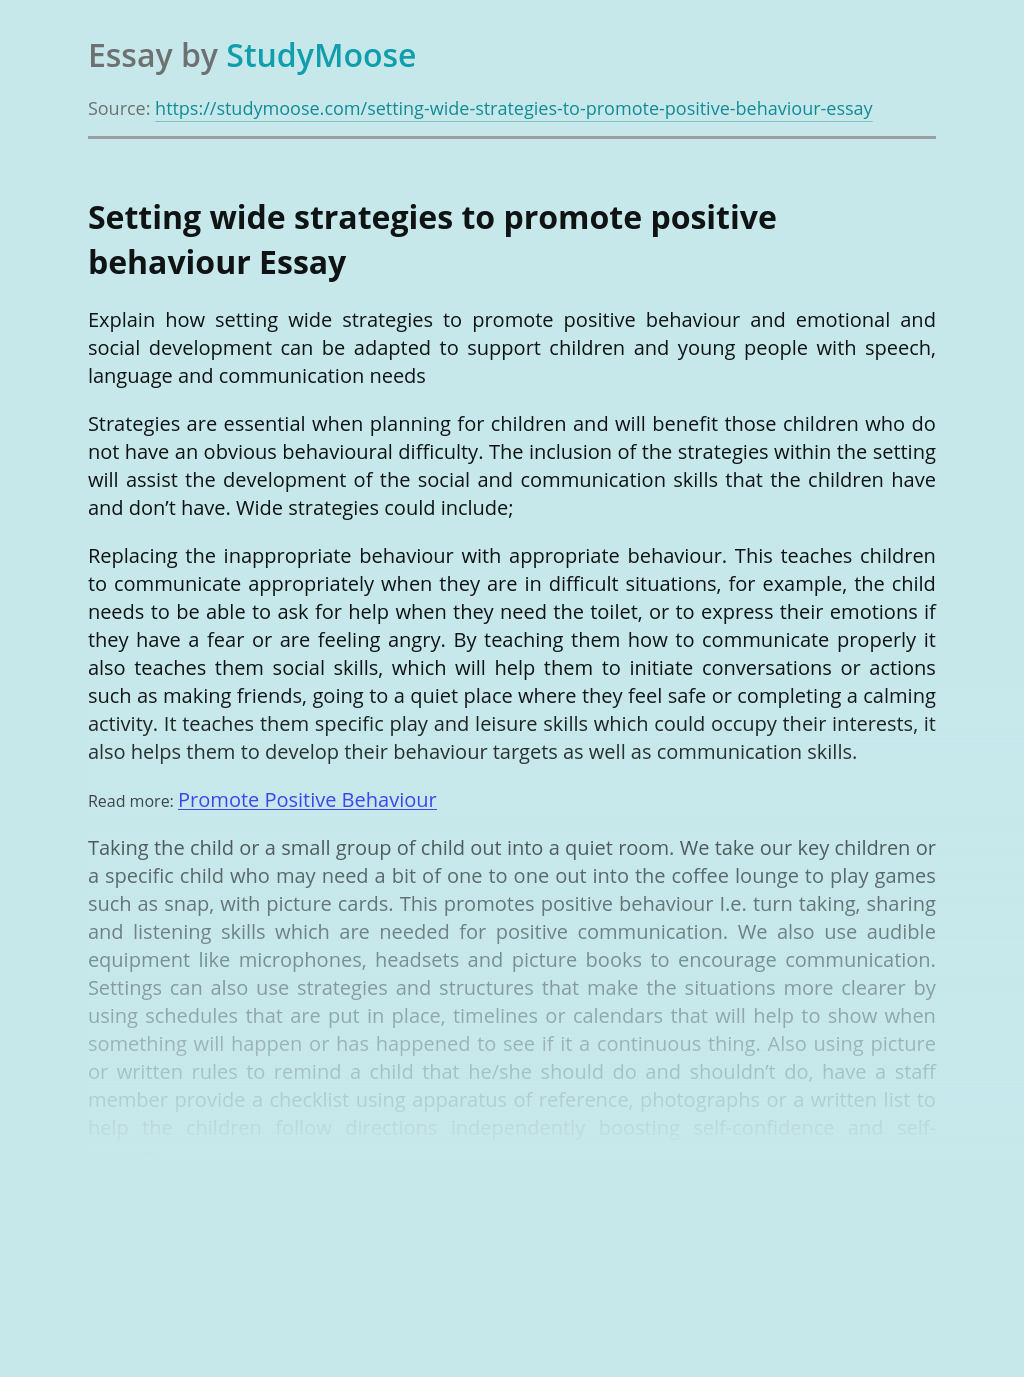 Setting Wide Strategies to Promote Positive Behaviour